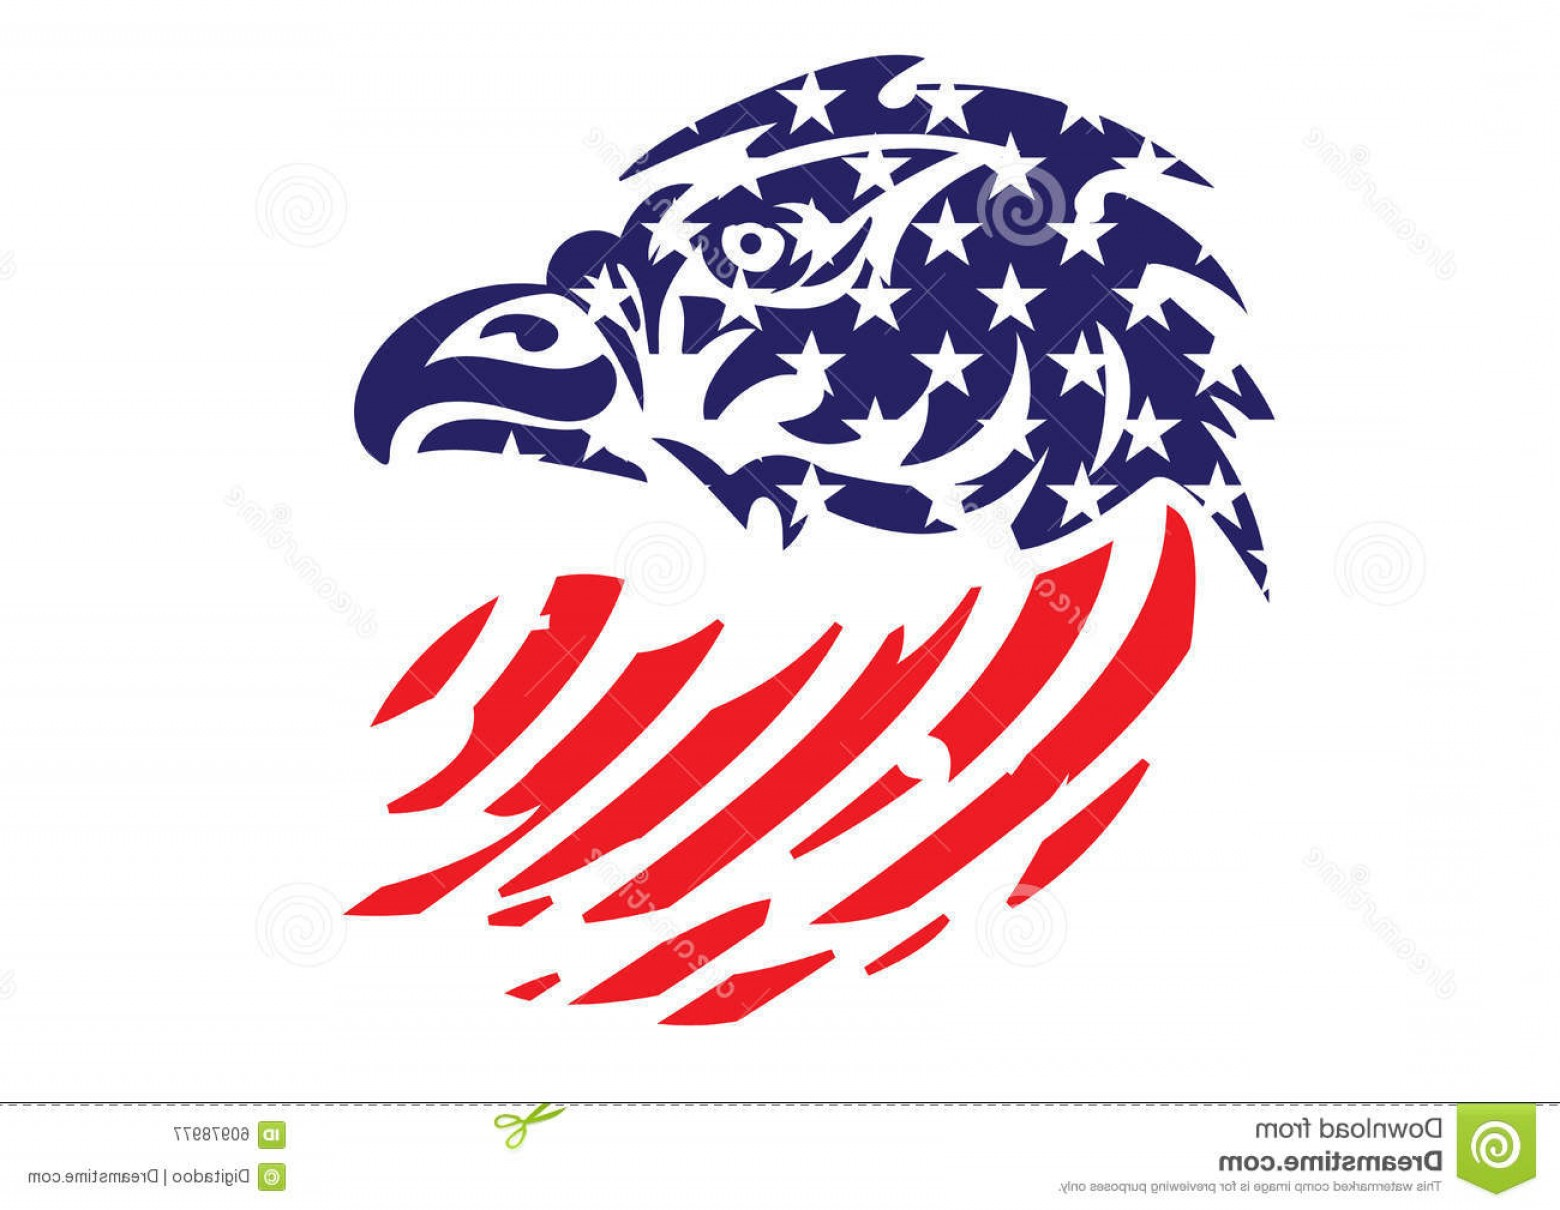 Patriotic Bald Eagle Vector: Stock Illustration Usa Flag Patriotic Eagle Bald Hawk Head Vector Object American Logo Image